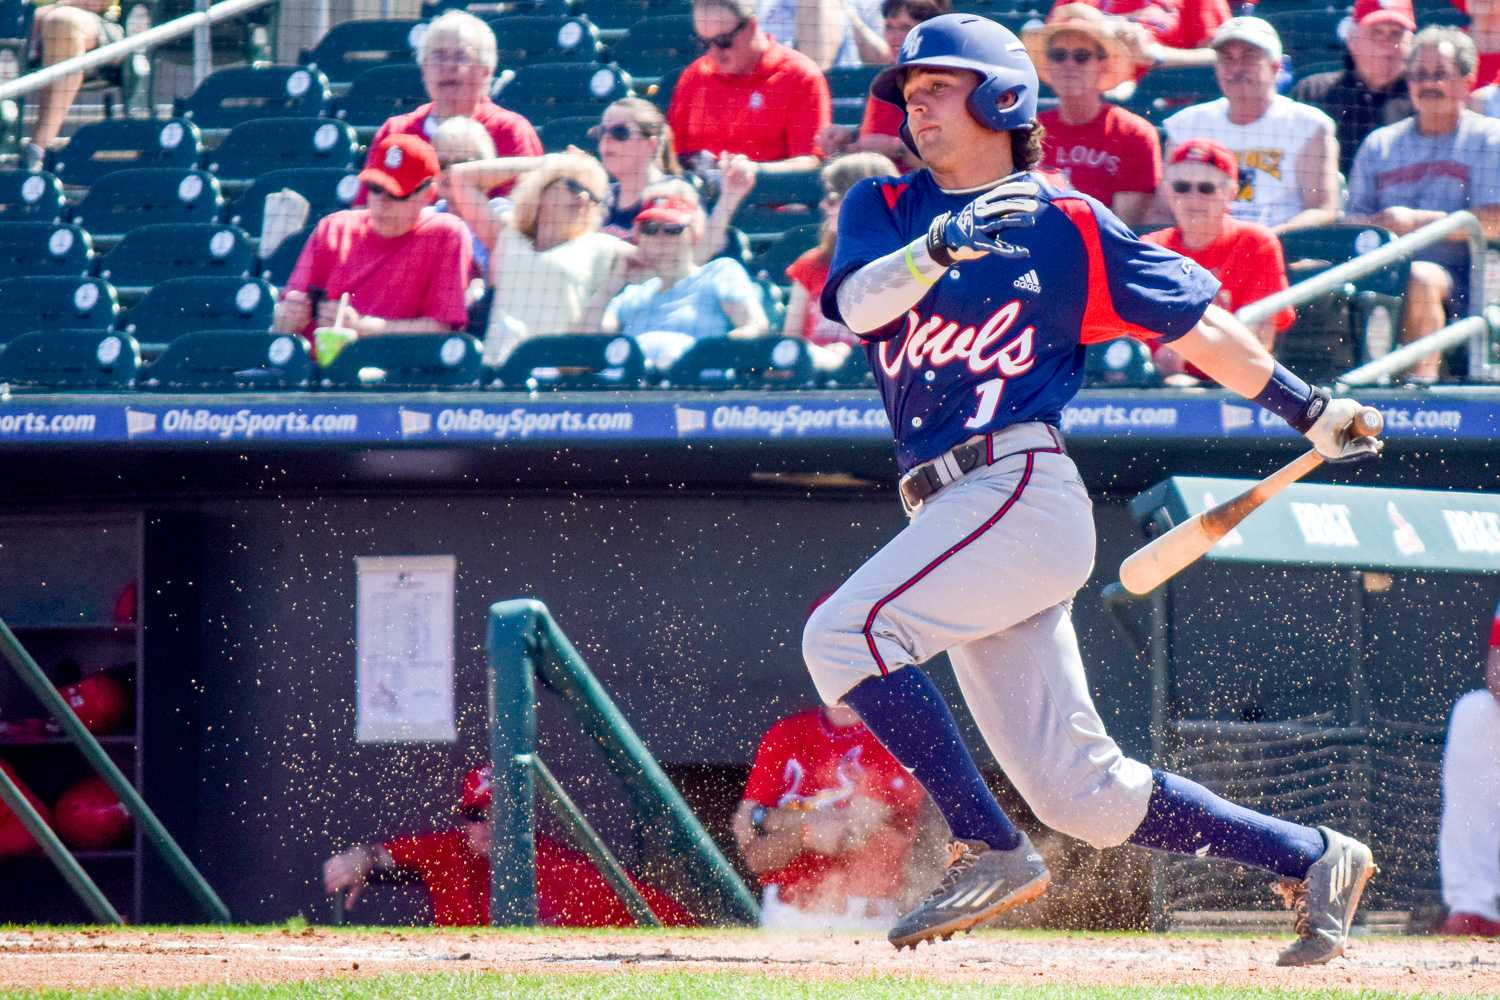 Senior second baseman Stephen Kerr fouls off a pitch during the Owls game versus the Saint Louis Cardinals on March 2, 2016. Ryan Lynch | Outgoing Editor